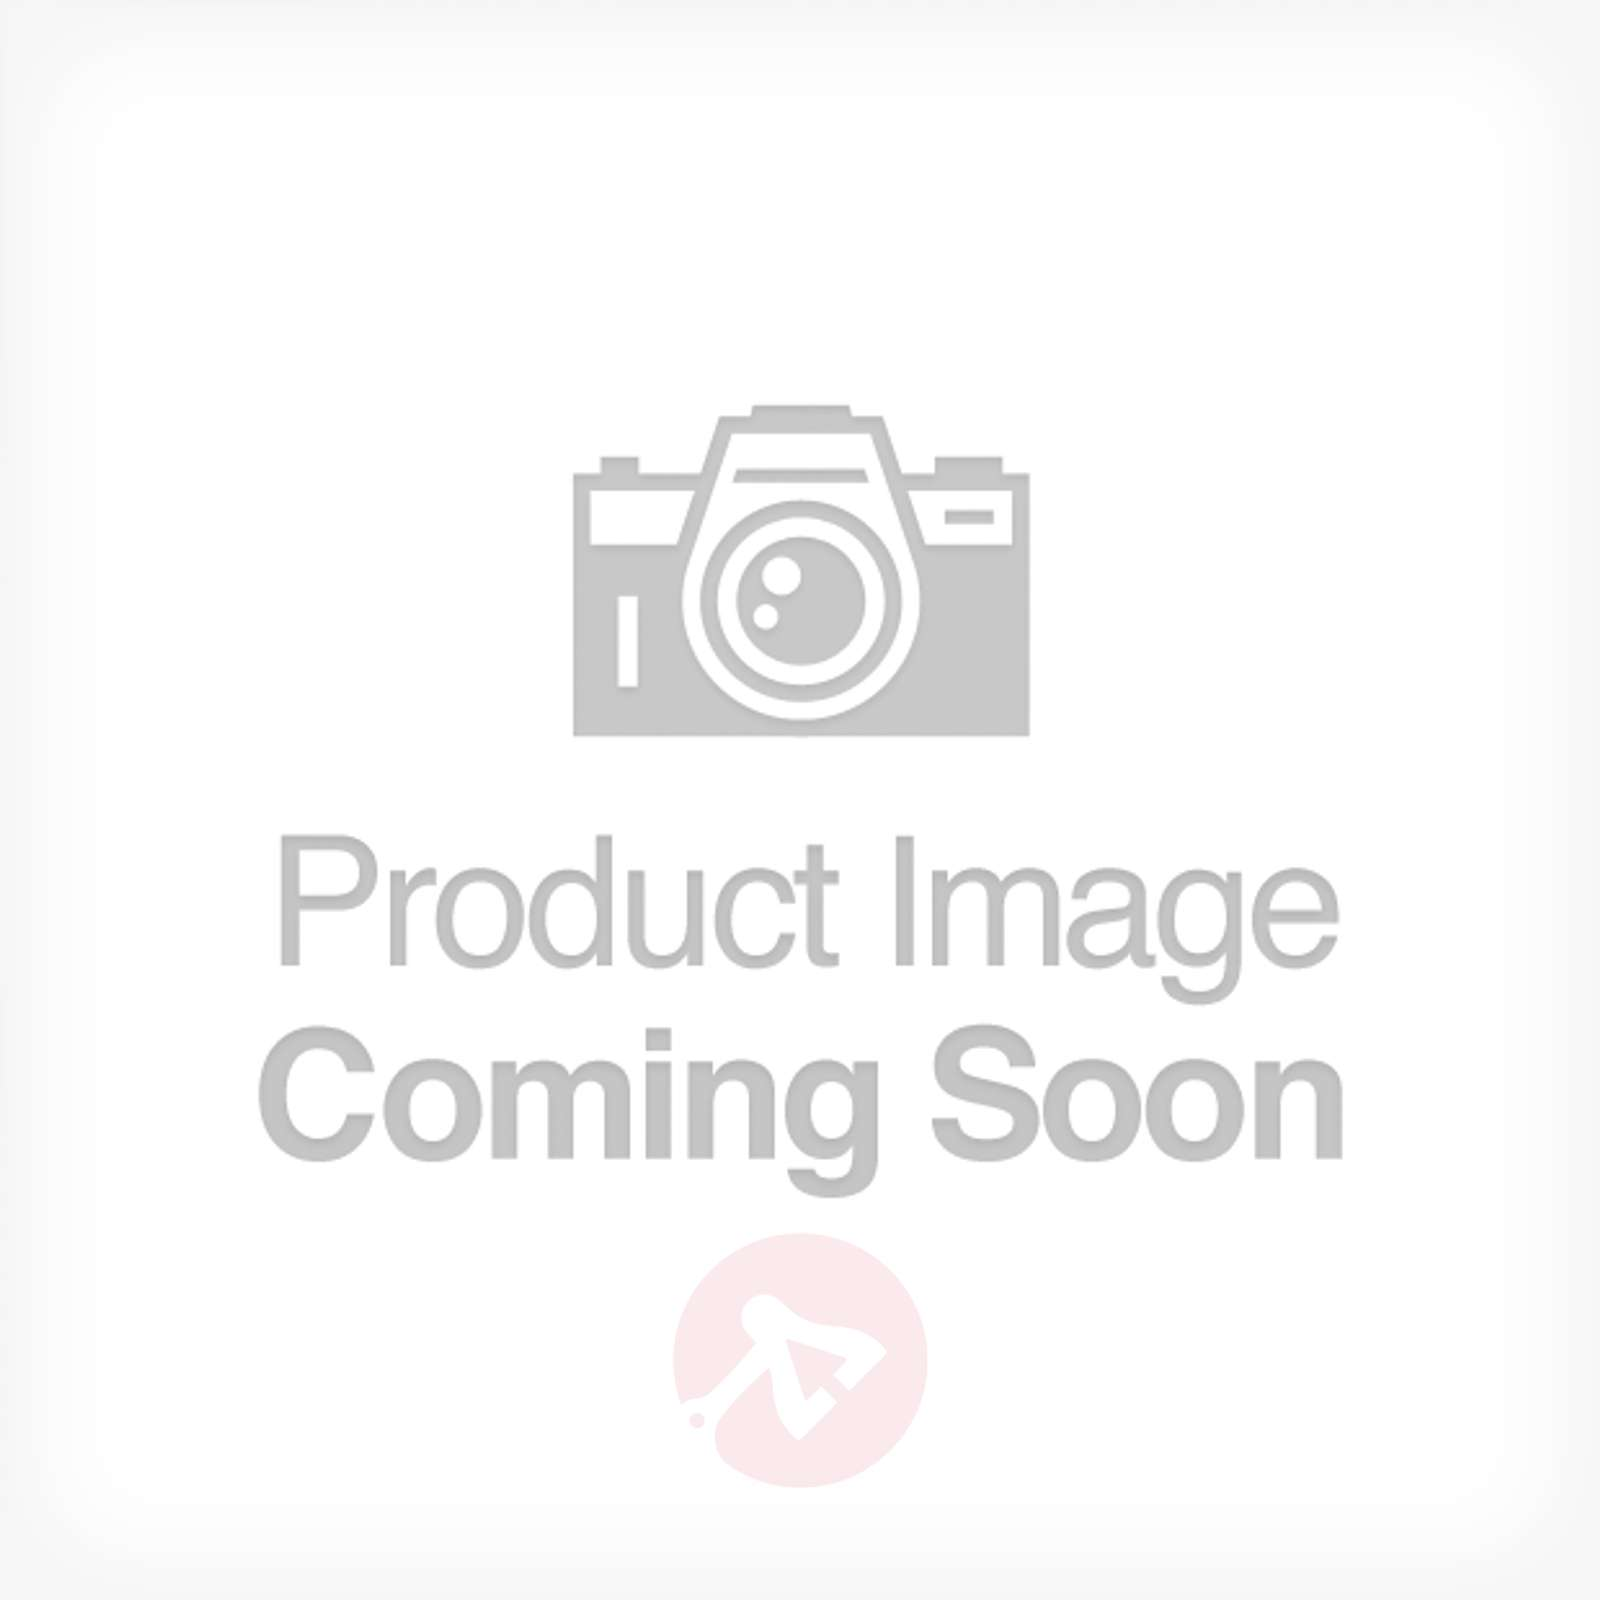 Teetoo 350 Picture Wall Light Low Voltage-1020245X-03